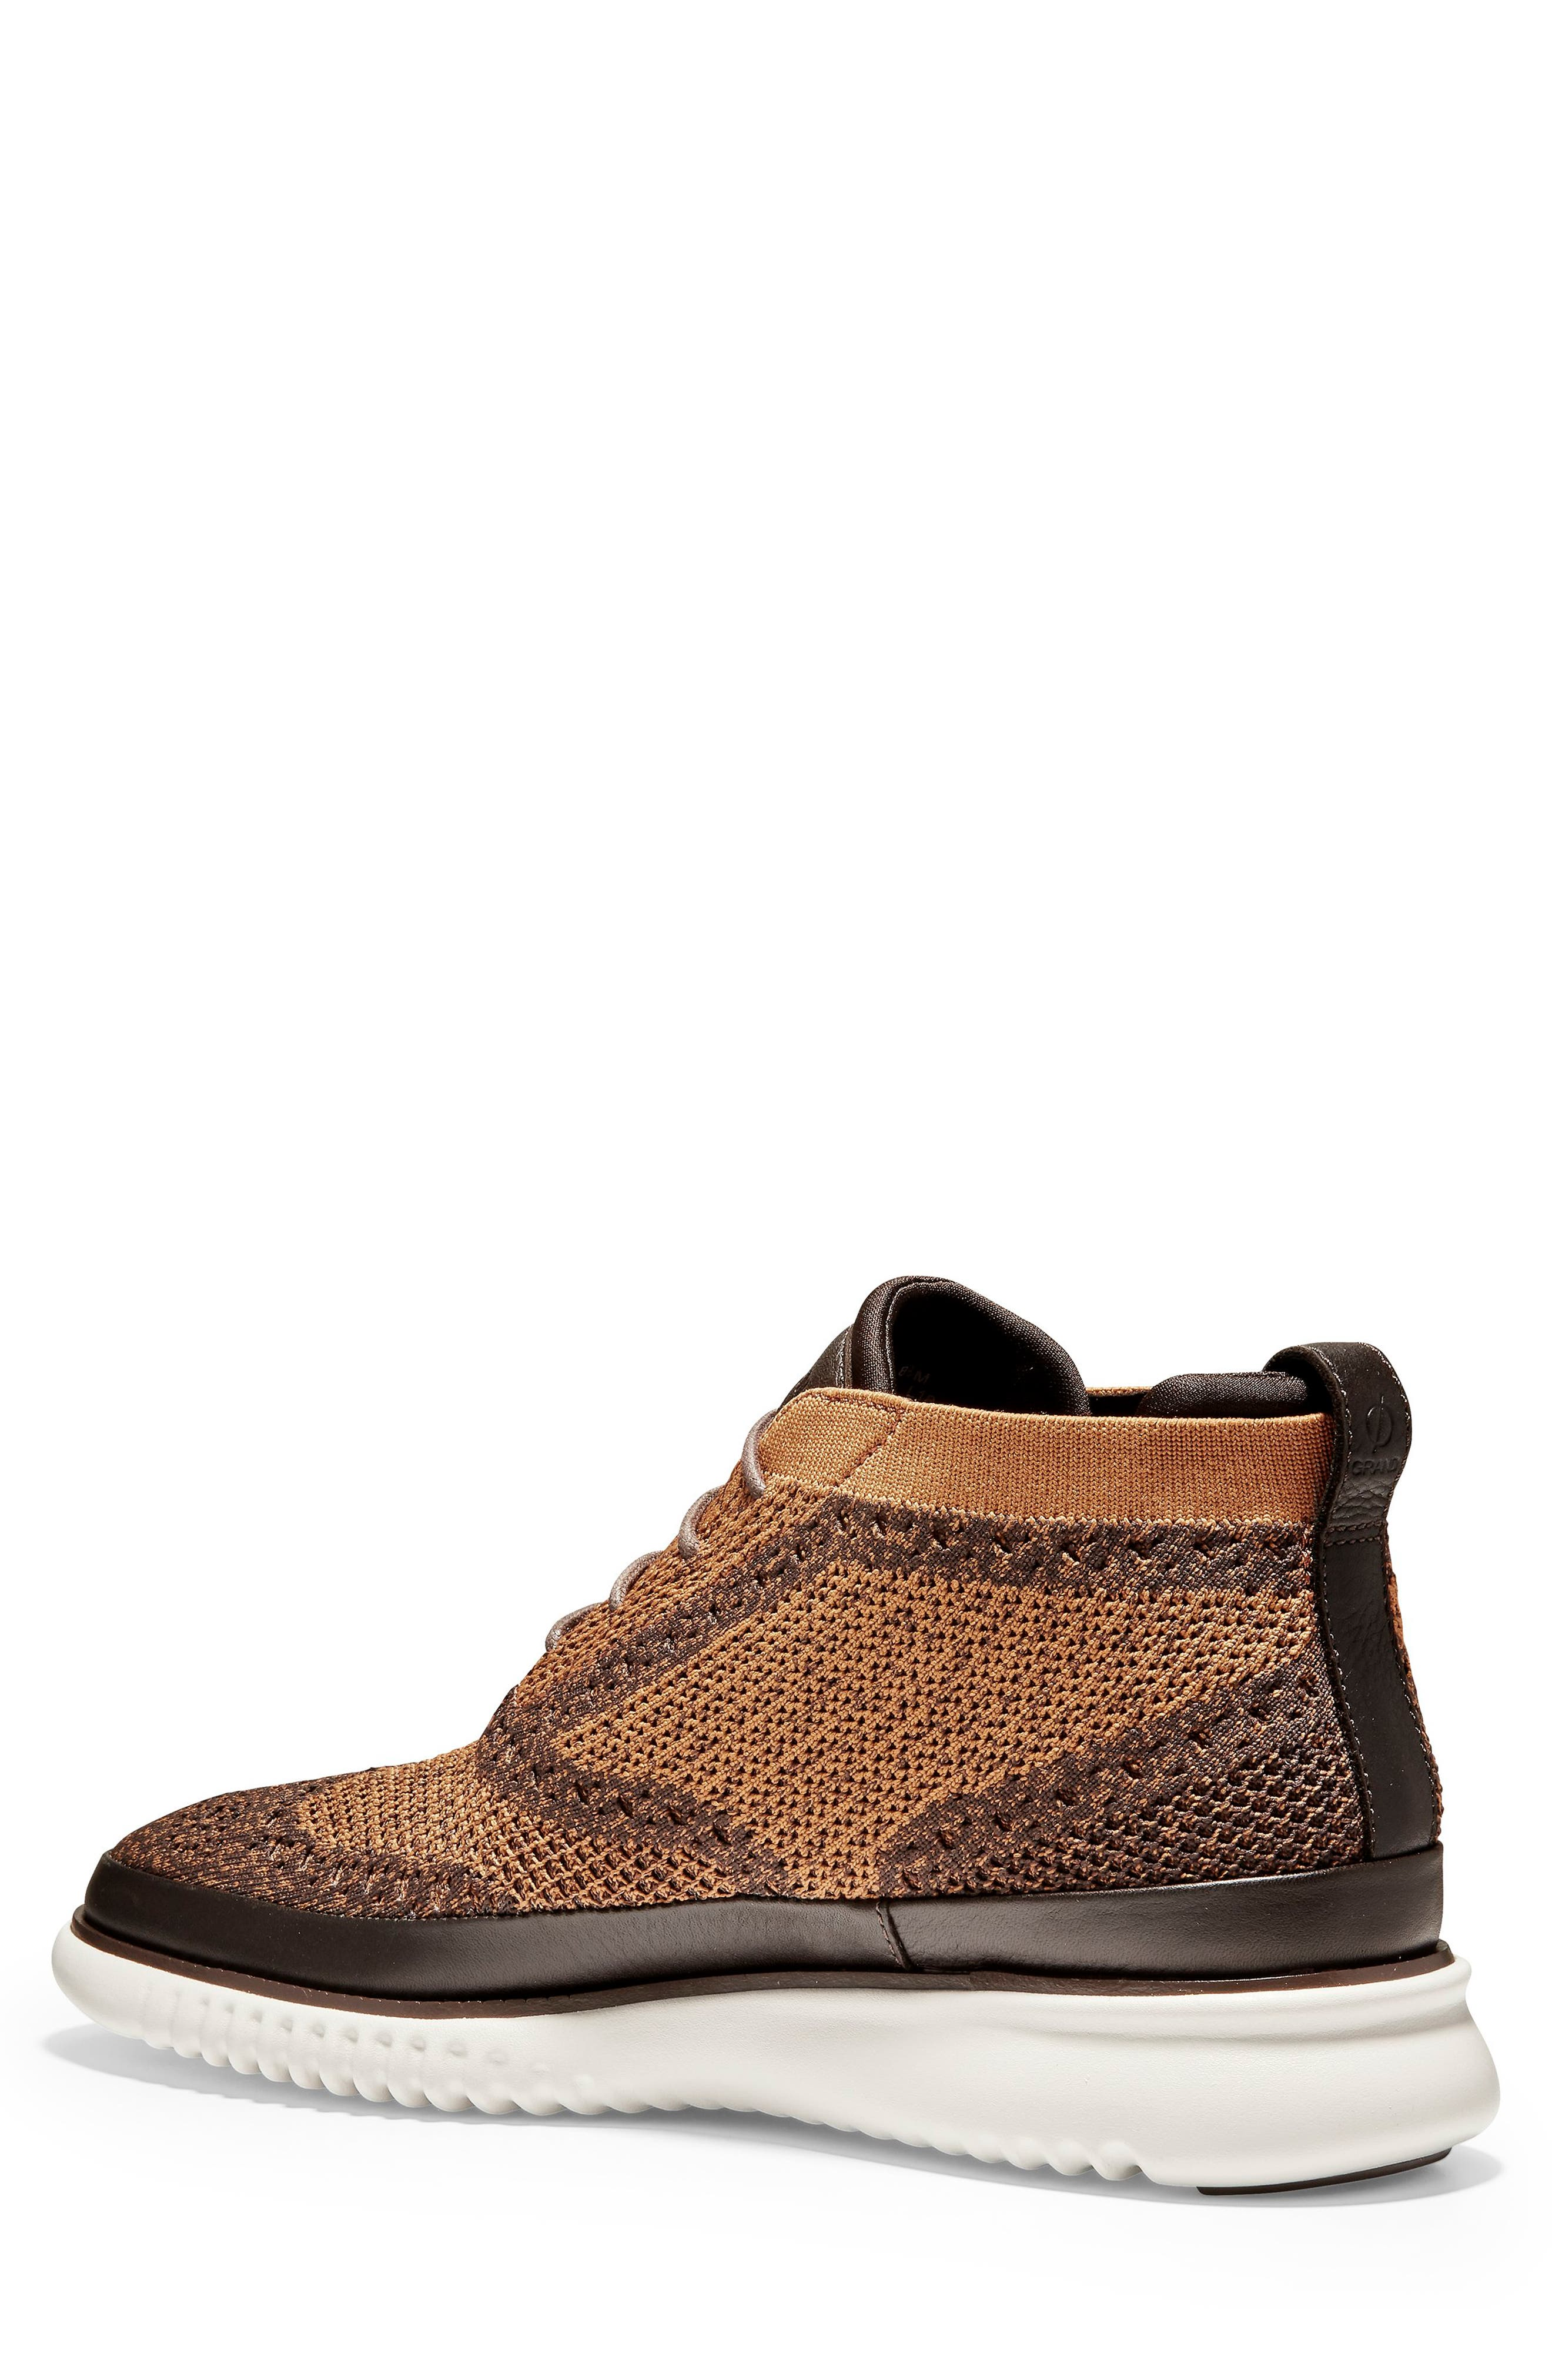 2.ZeroGrand Stitchlite Water Resistant Chukka Boot,                             Alternate thumbnail 2, color,                             BROWN HEATHERED KNIT